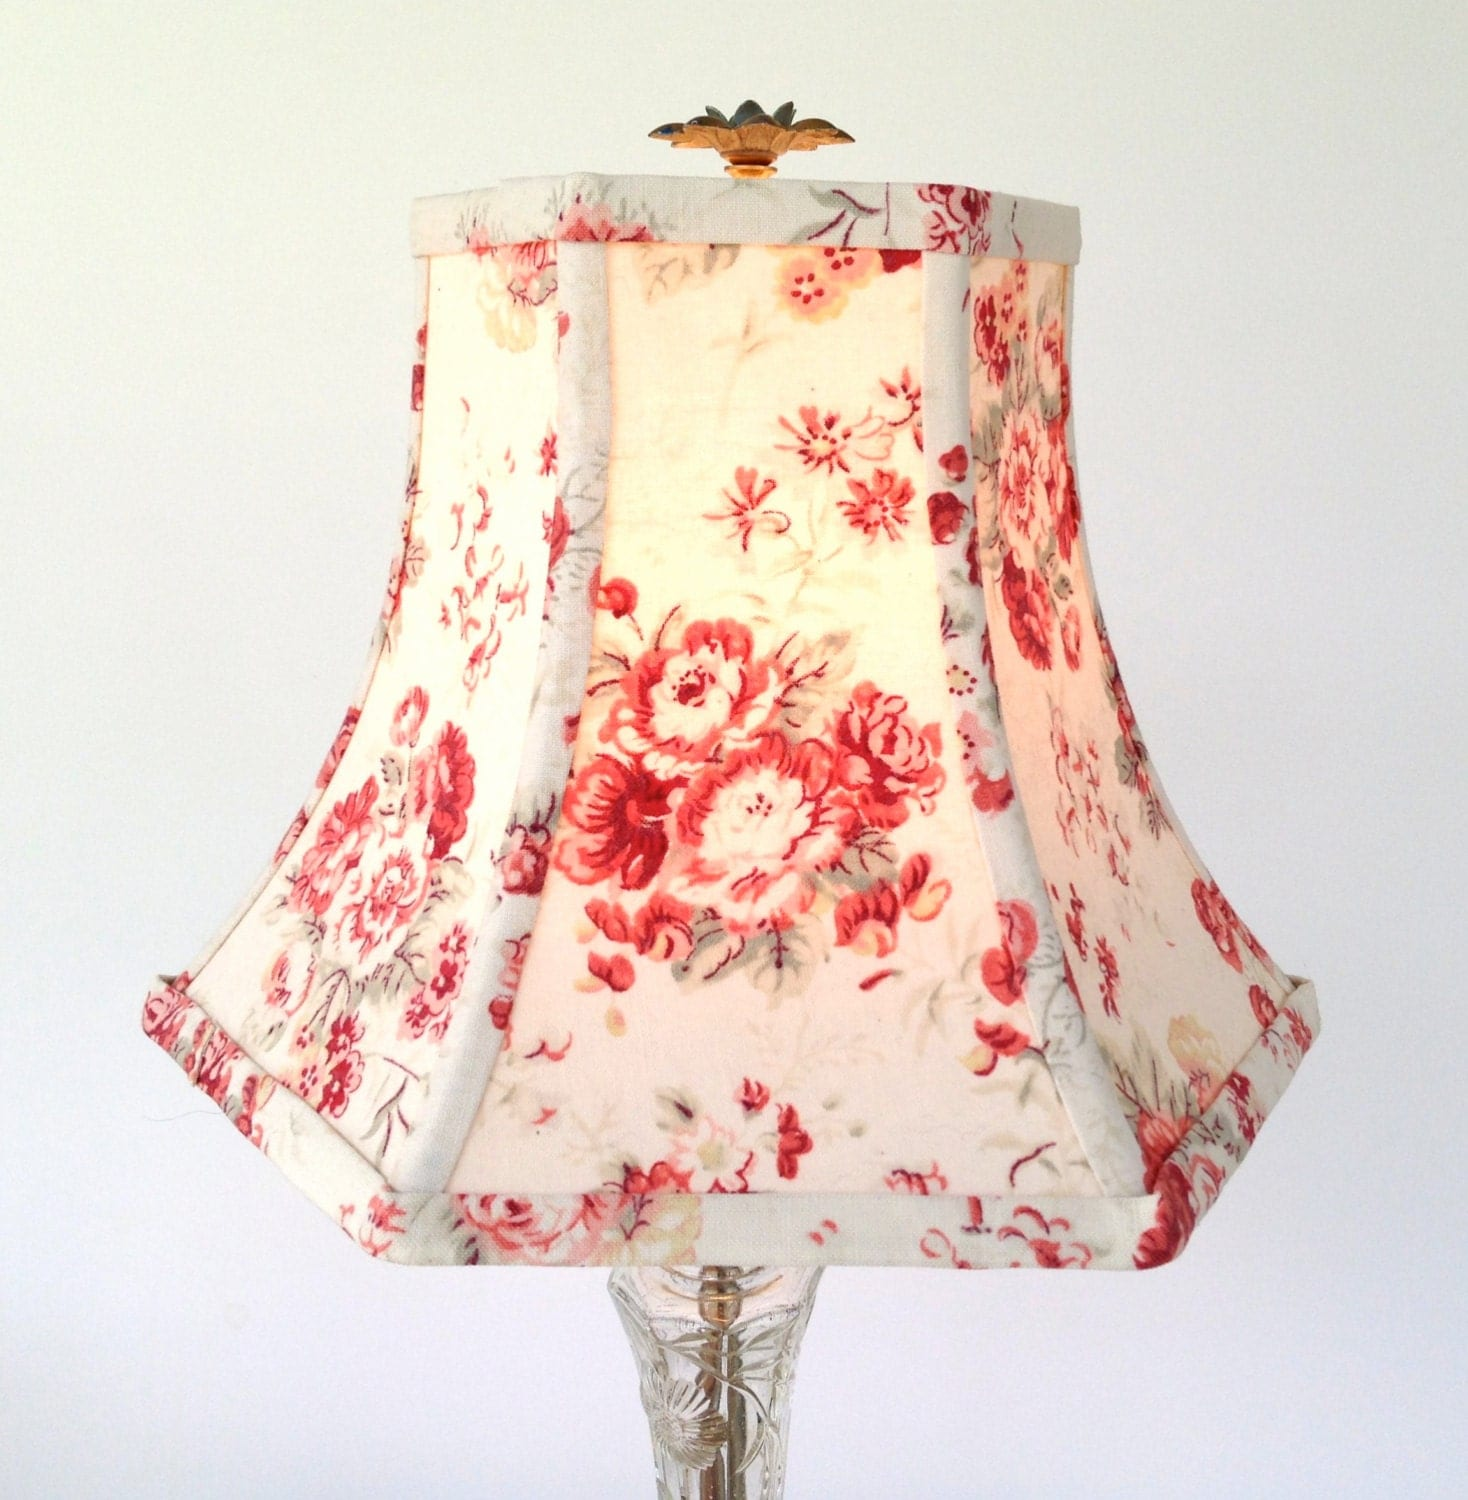 Chic Lamps: Shabby Chic Lamp Shade Lampshade French Vintage Cotton Hex